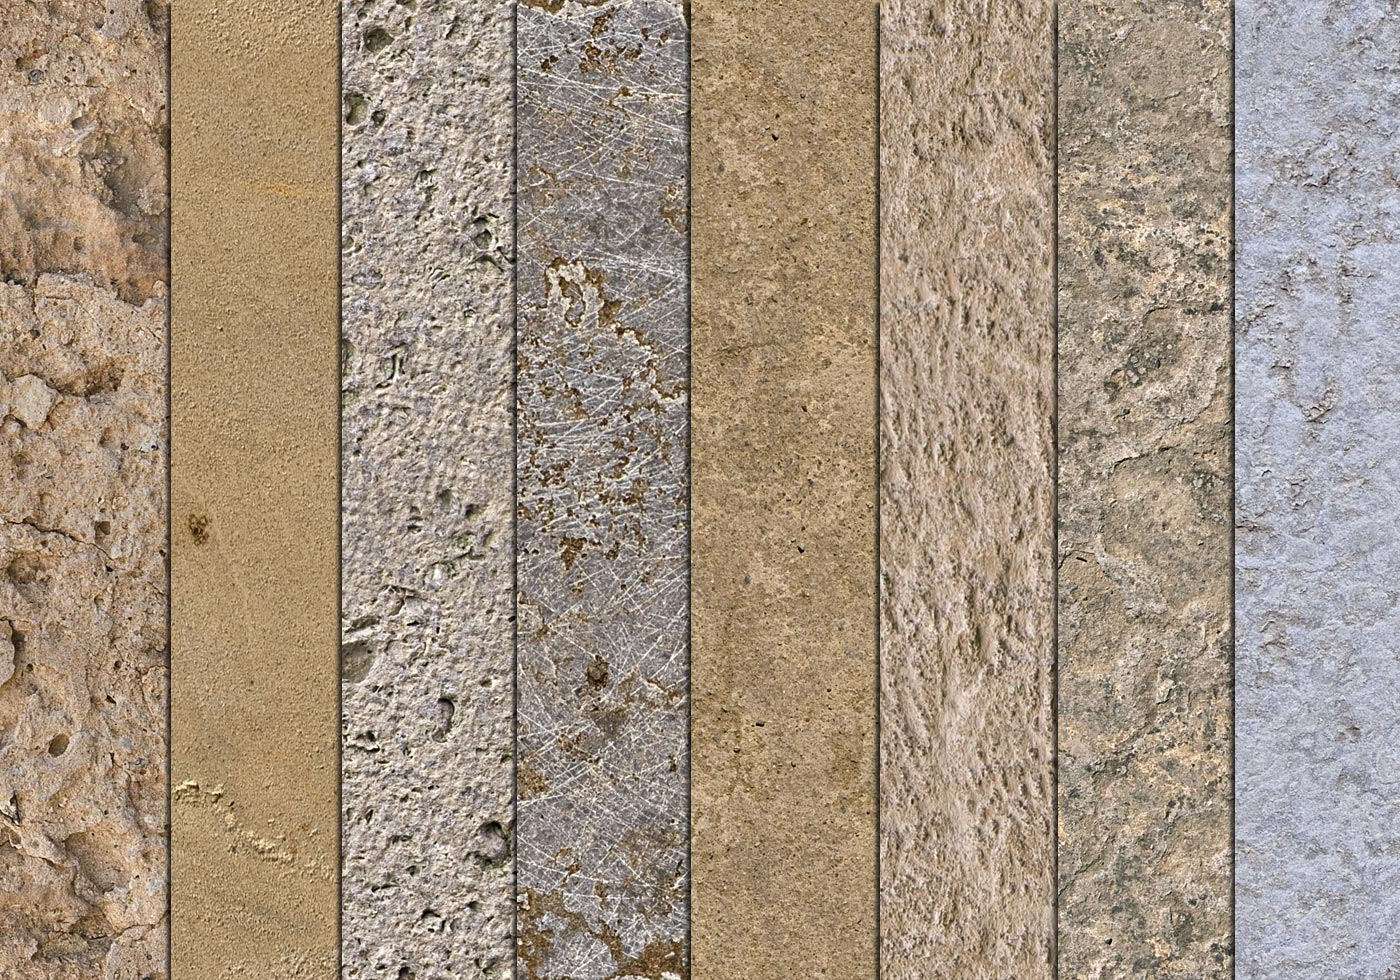 10 Seamless Mixed Stone Textures Free Photoshop Brushes